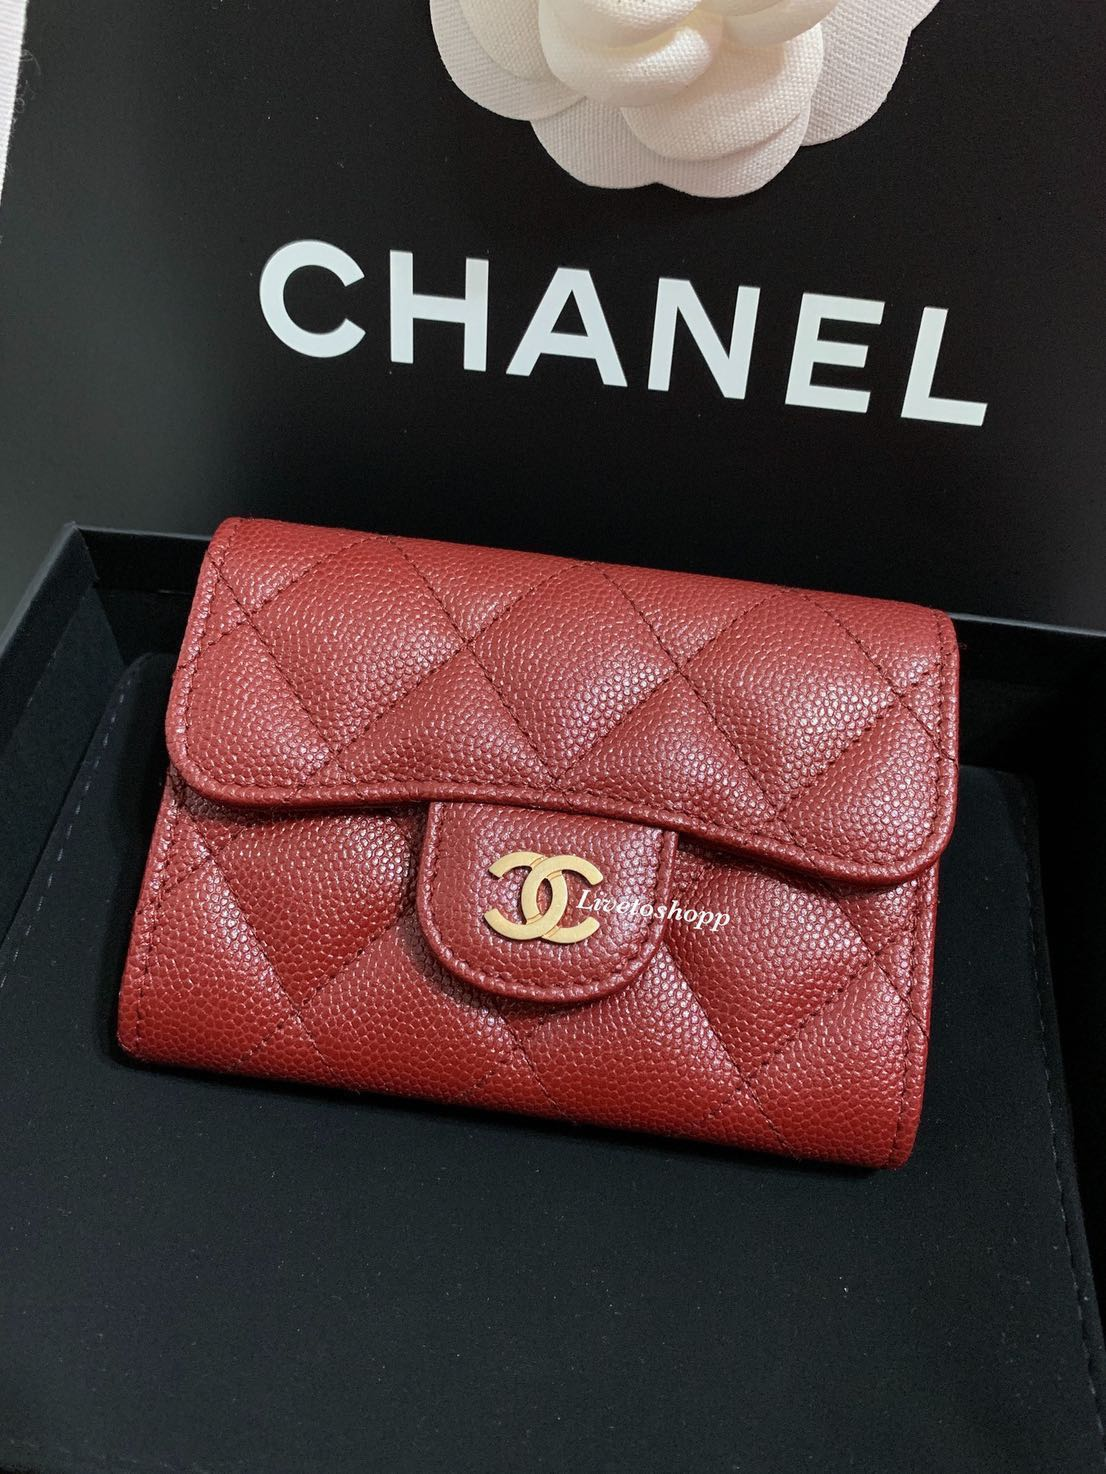 b59ab90146b4 Brand New Chanel 18C XL Card Holder / Coin Purse, Luxury, Bags ...